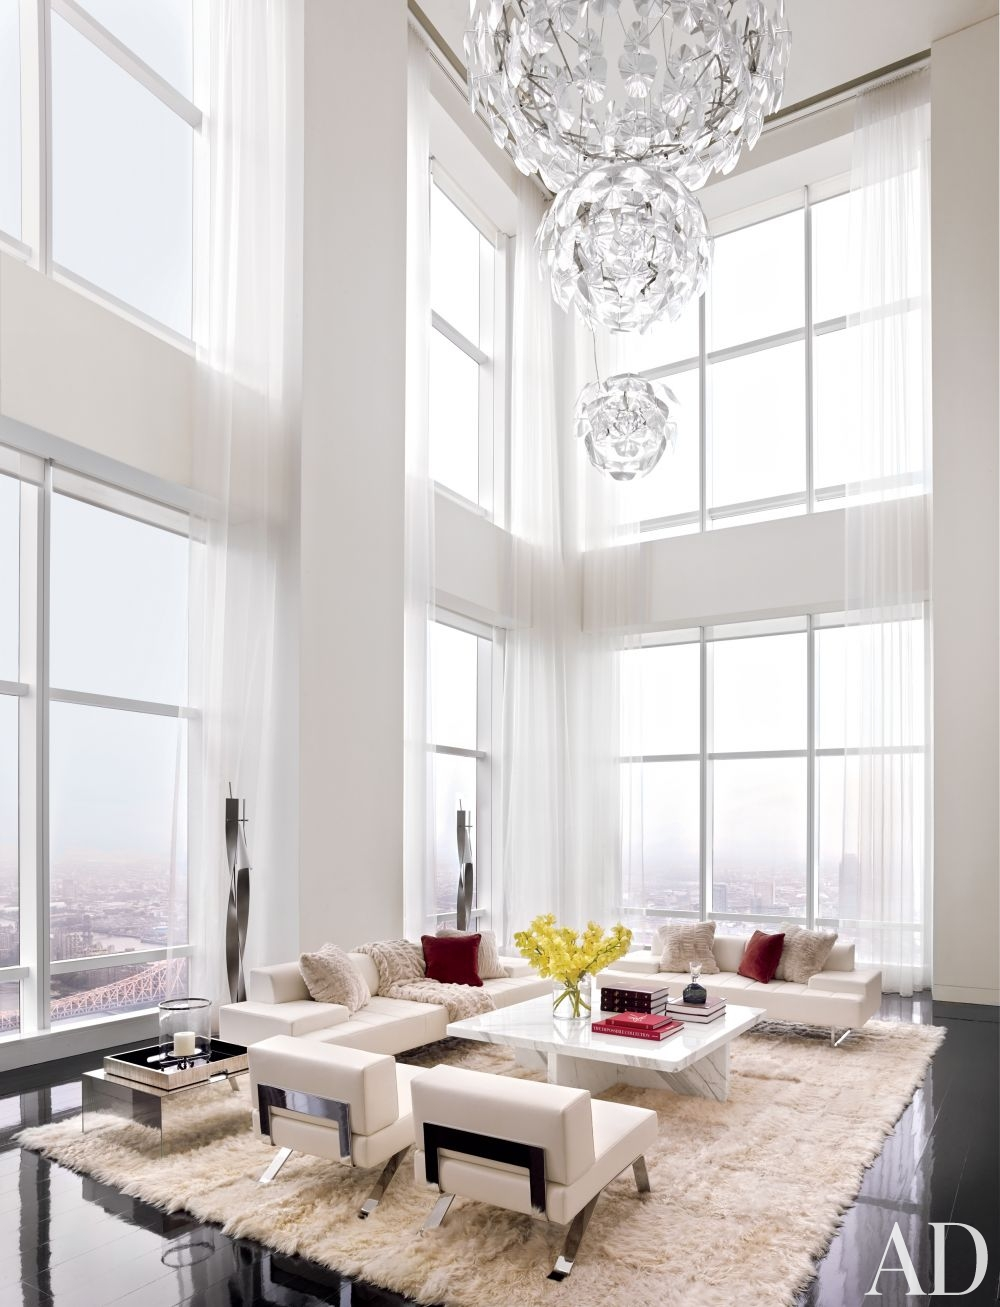 White Living Room Ideas - Stellar Interior Design